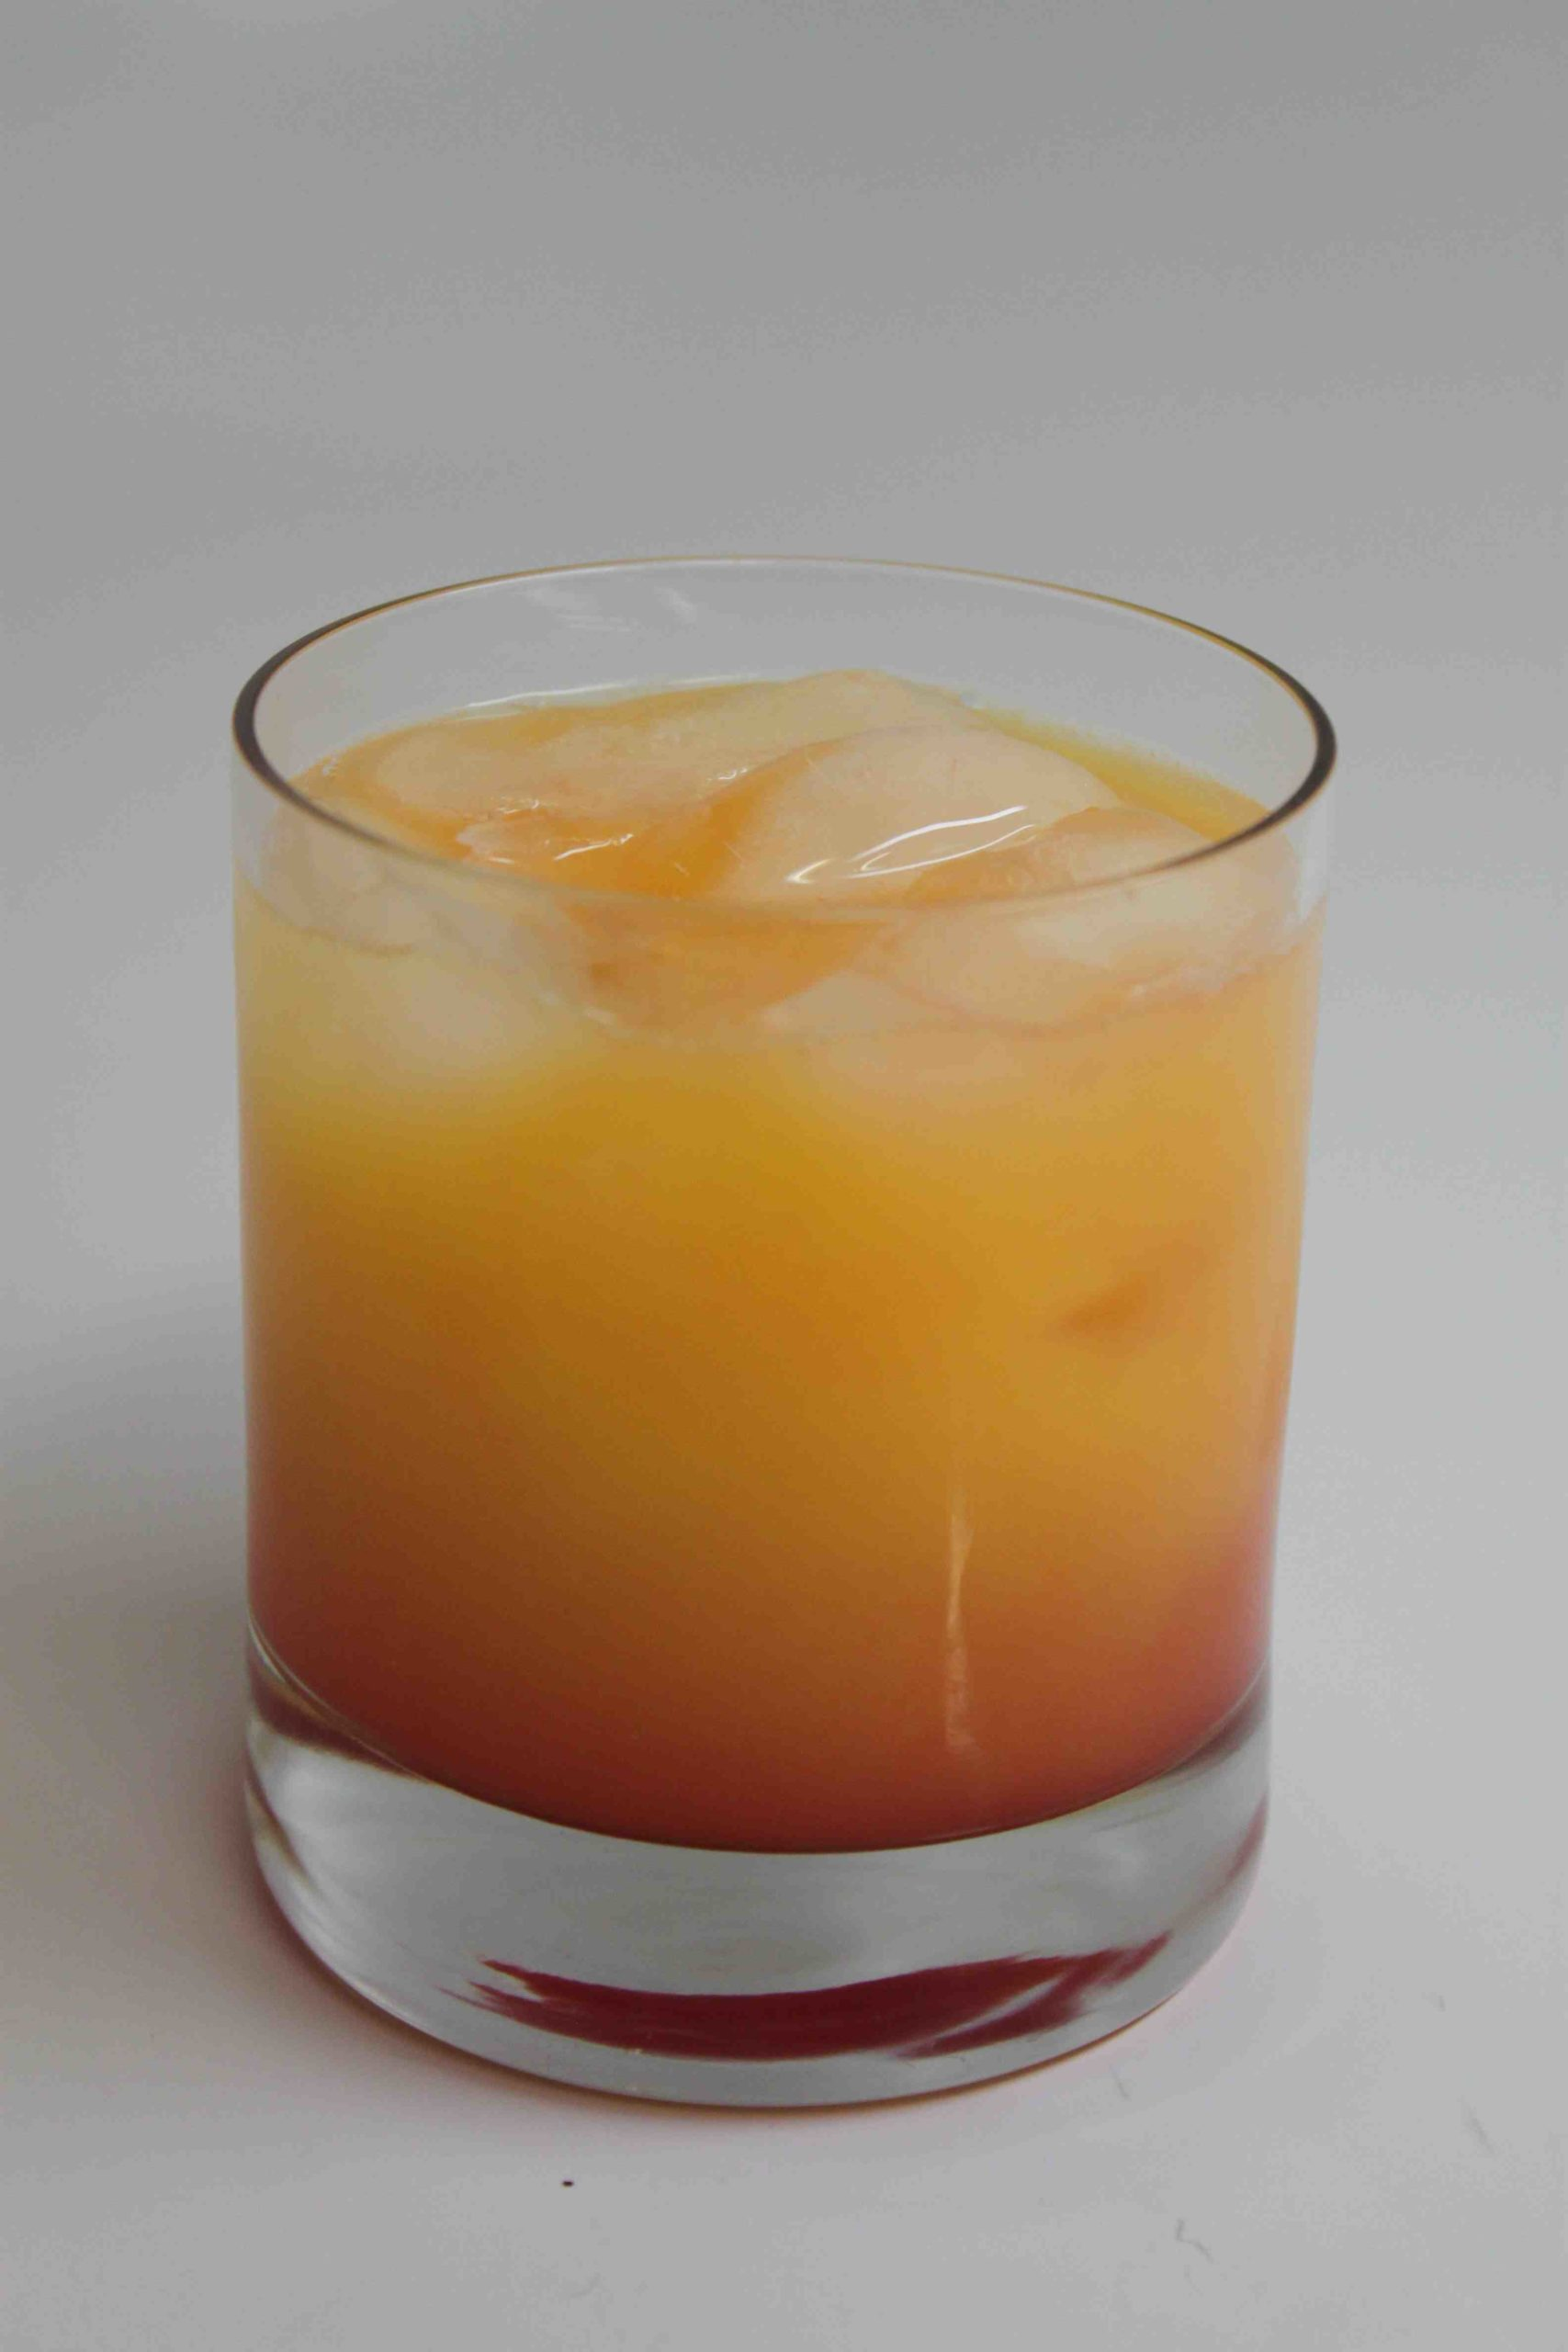 Tequila sunrise with ice in a rocks glass.